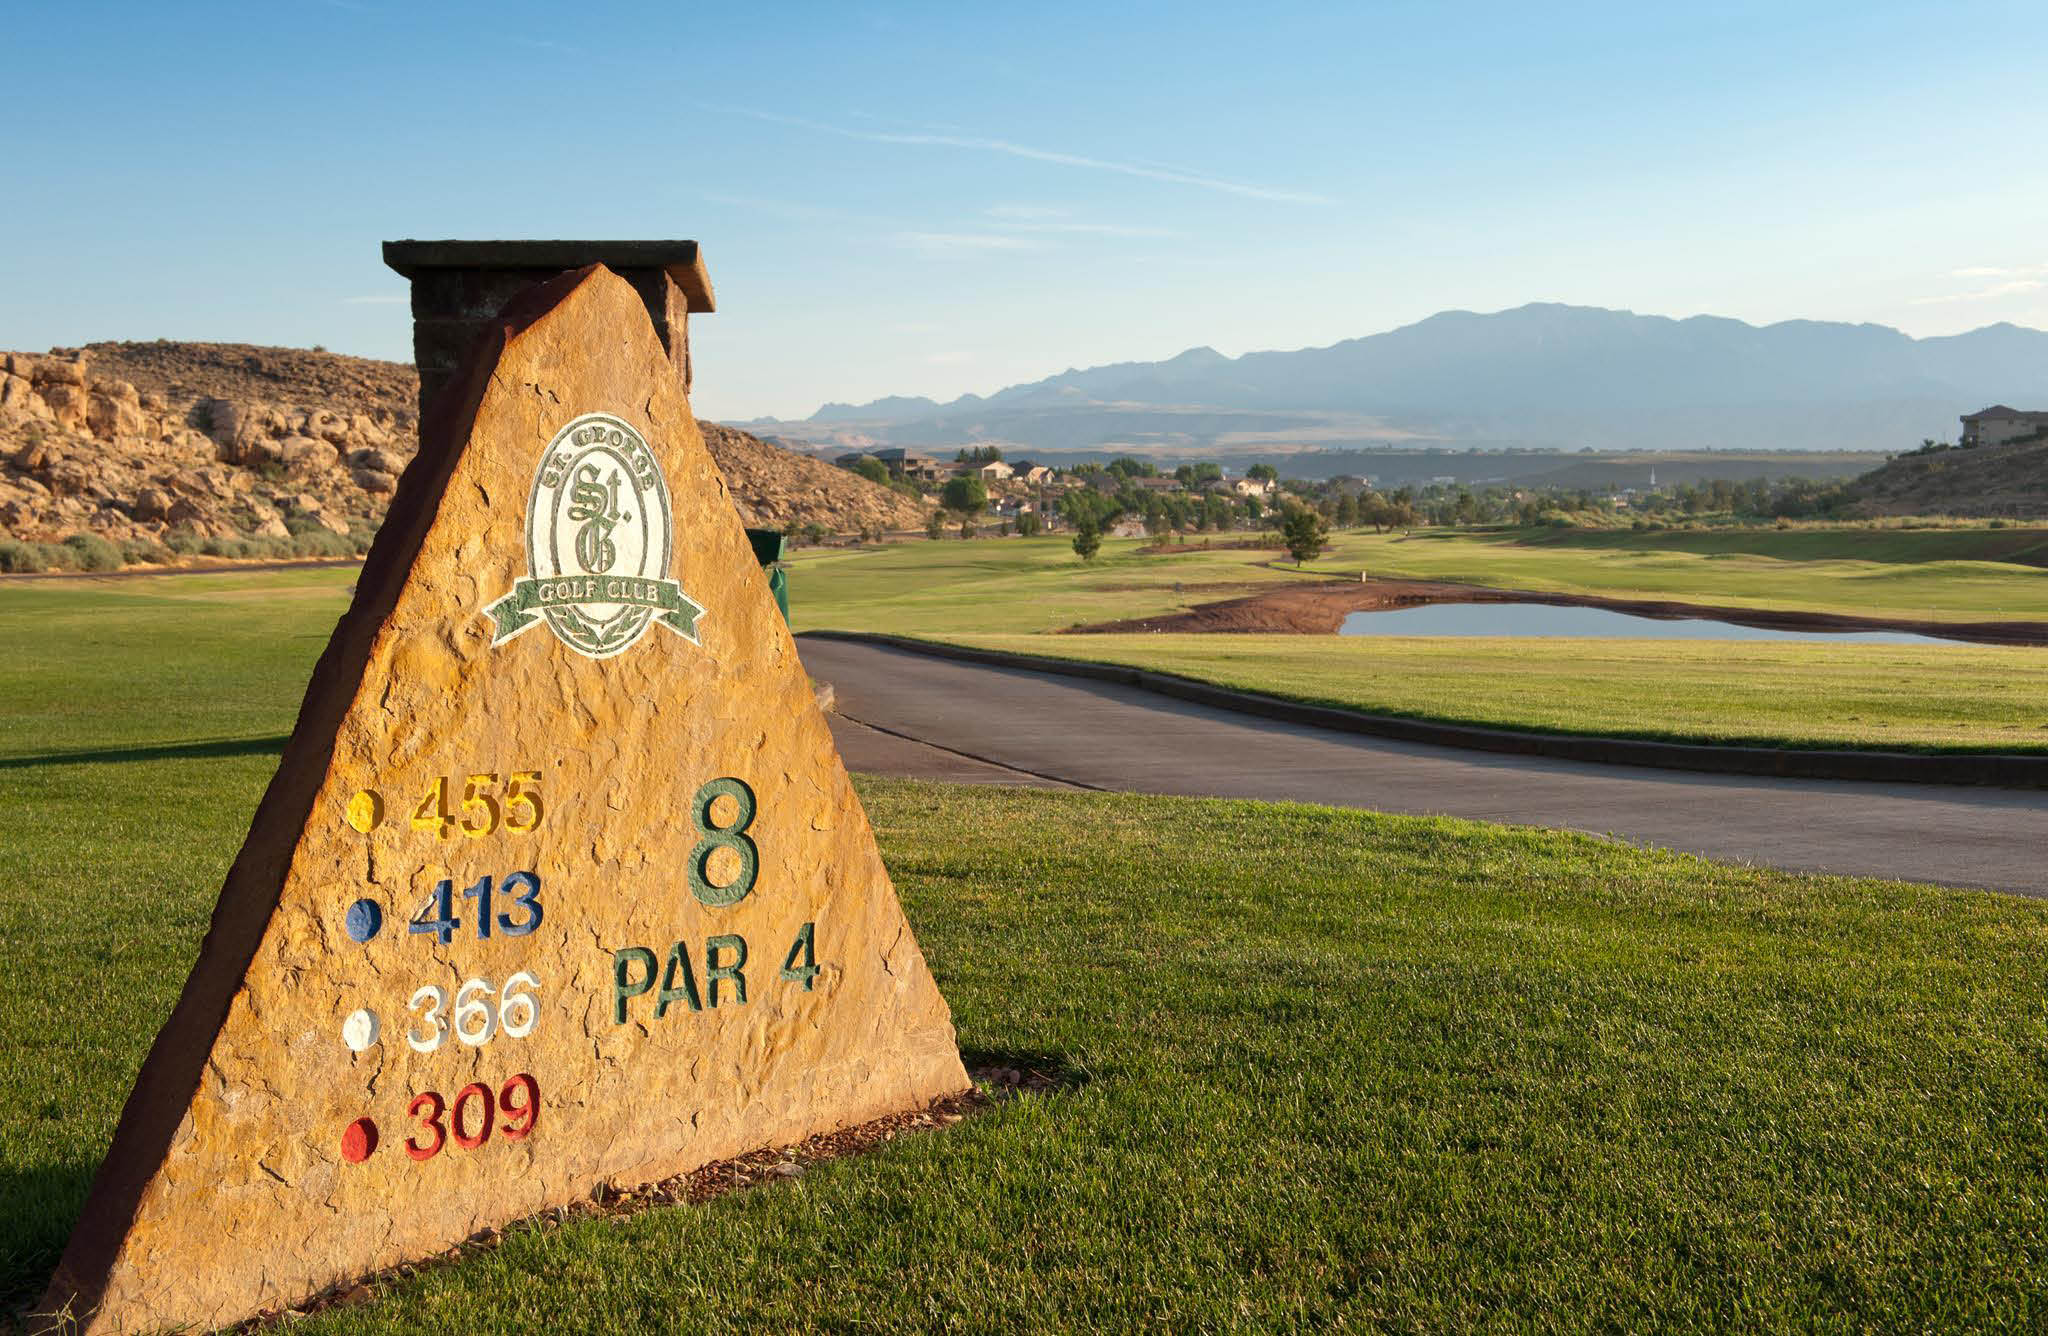 St. George Golf Club is a municipal course operated by the City of St. George.